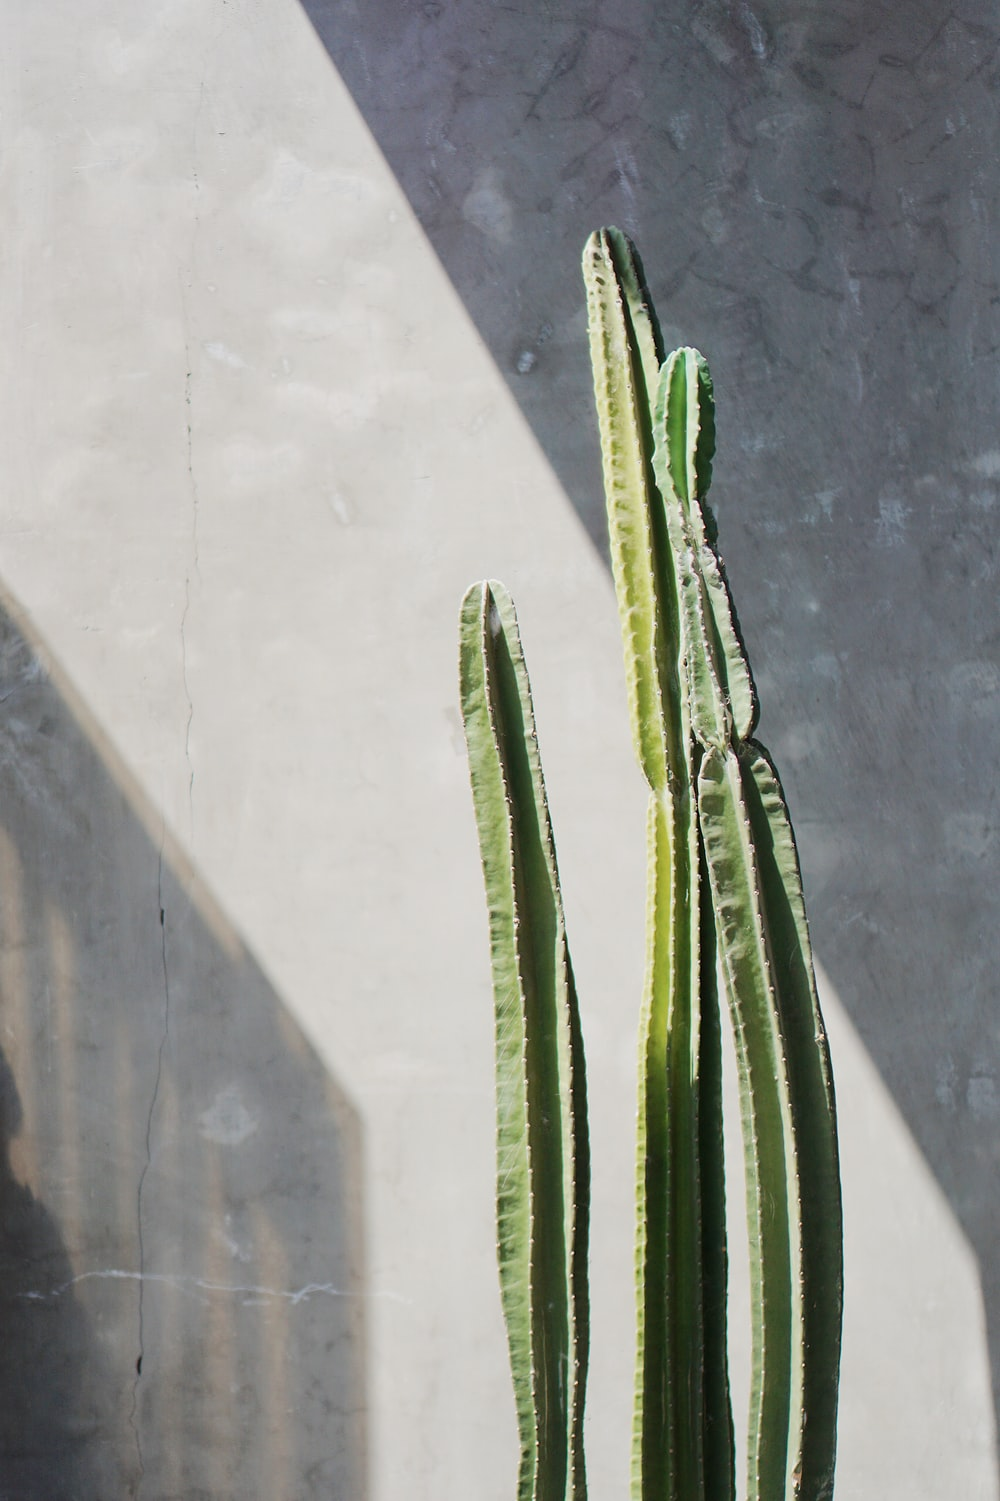 green cactus plant on gray concrete wall